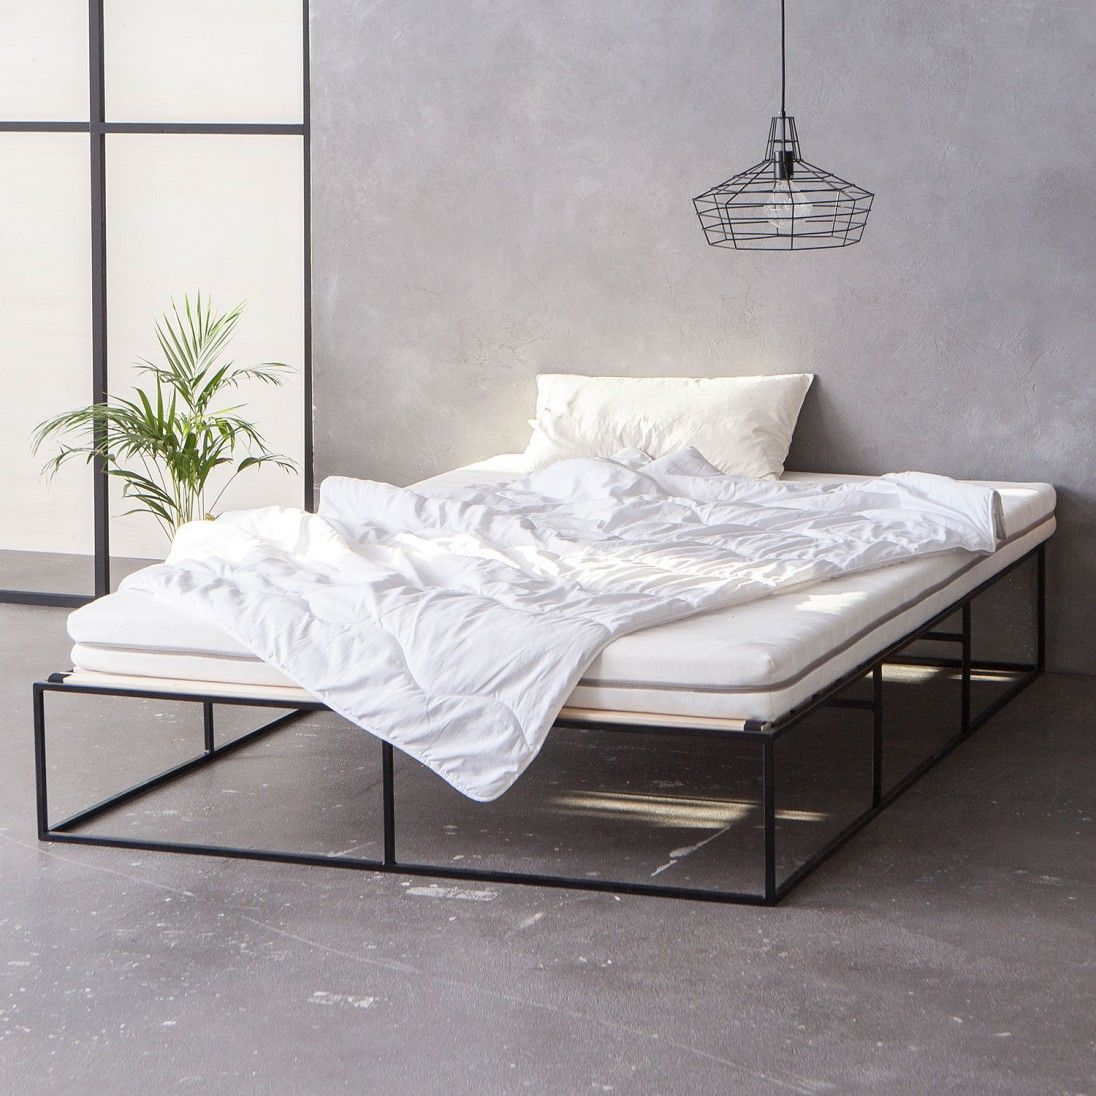 Monoqi ion stahlbett schwarz minimalist furniture designs minimalist furniture minimalist bed